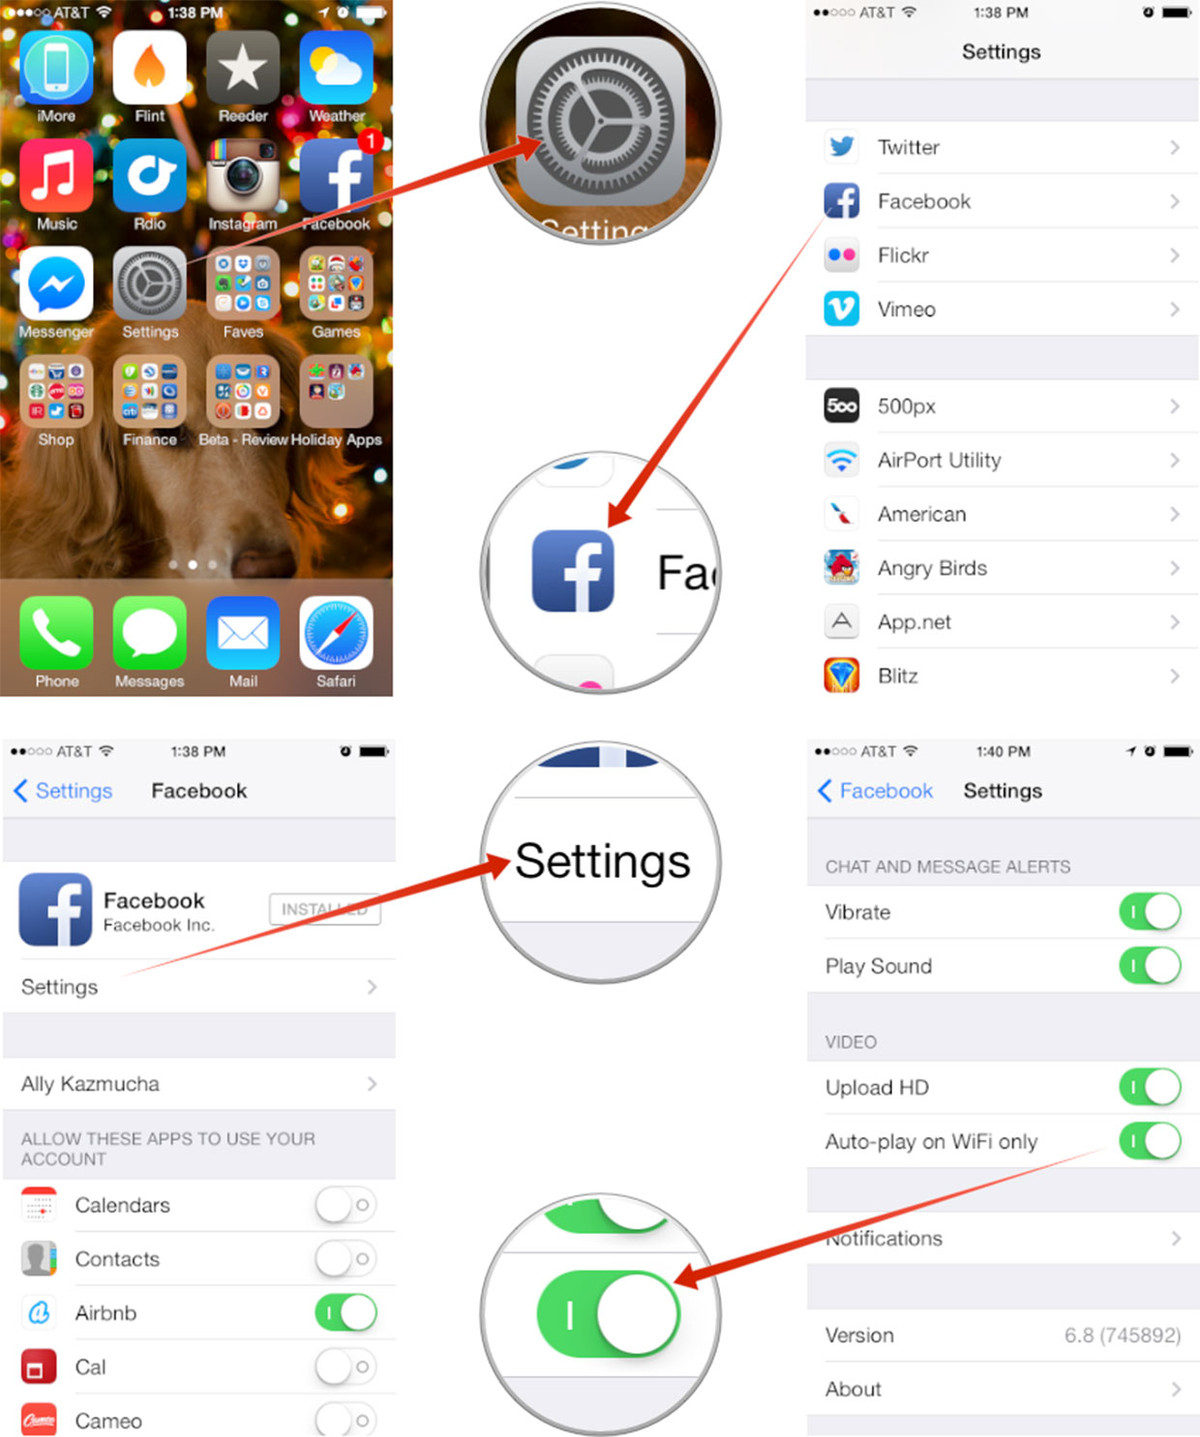 Turn off video autoplay facebook iphone 6 13